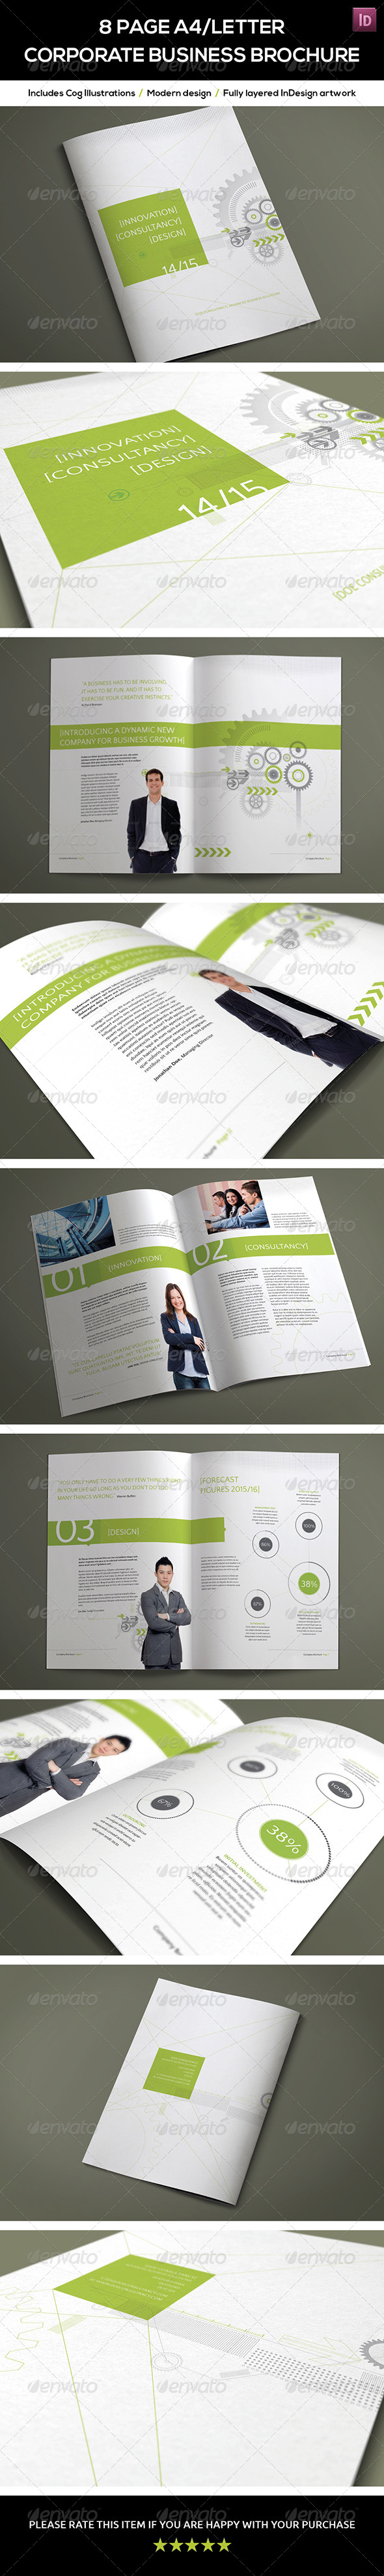 GraphicRiver 8 Page A4 Letter Corporate Business Brochure 7889872